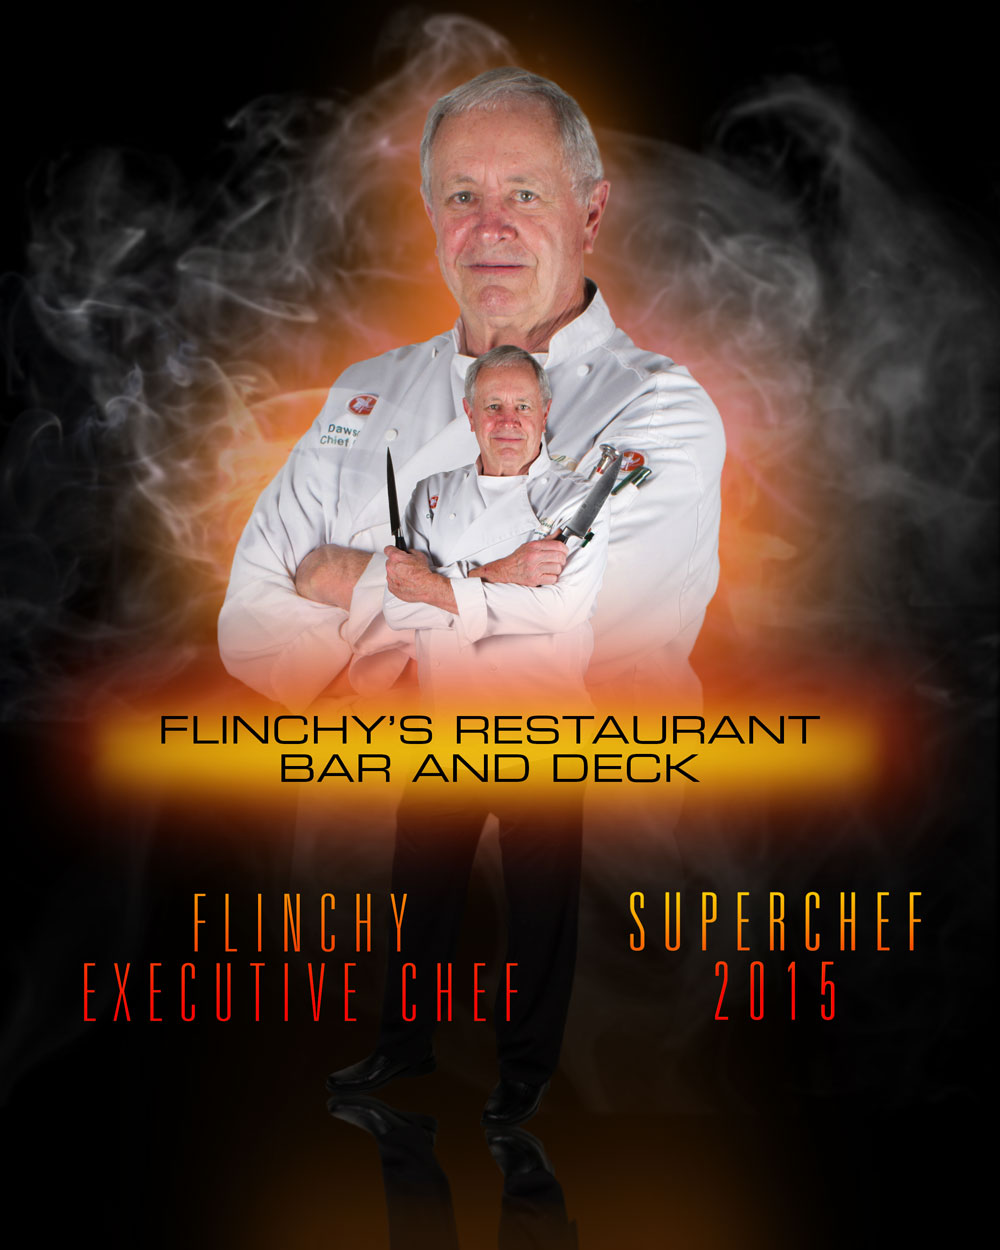 Flinchy, Executive Chef, Flinchy's Bar and Restaurant